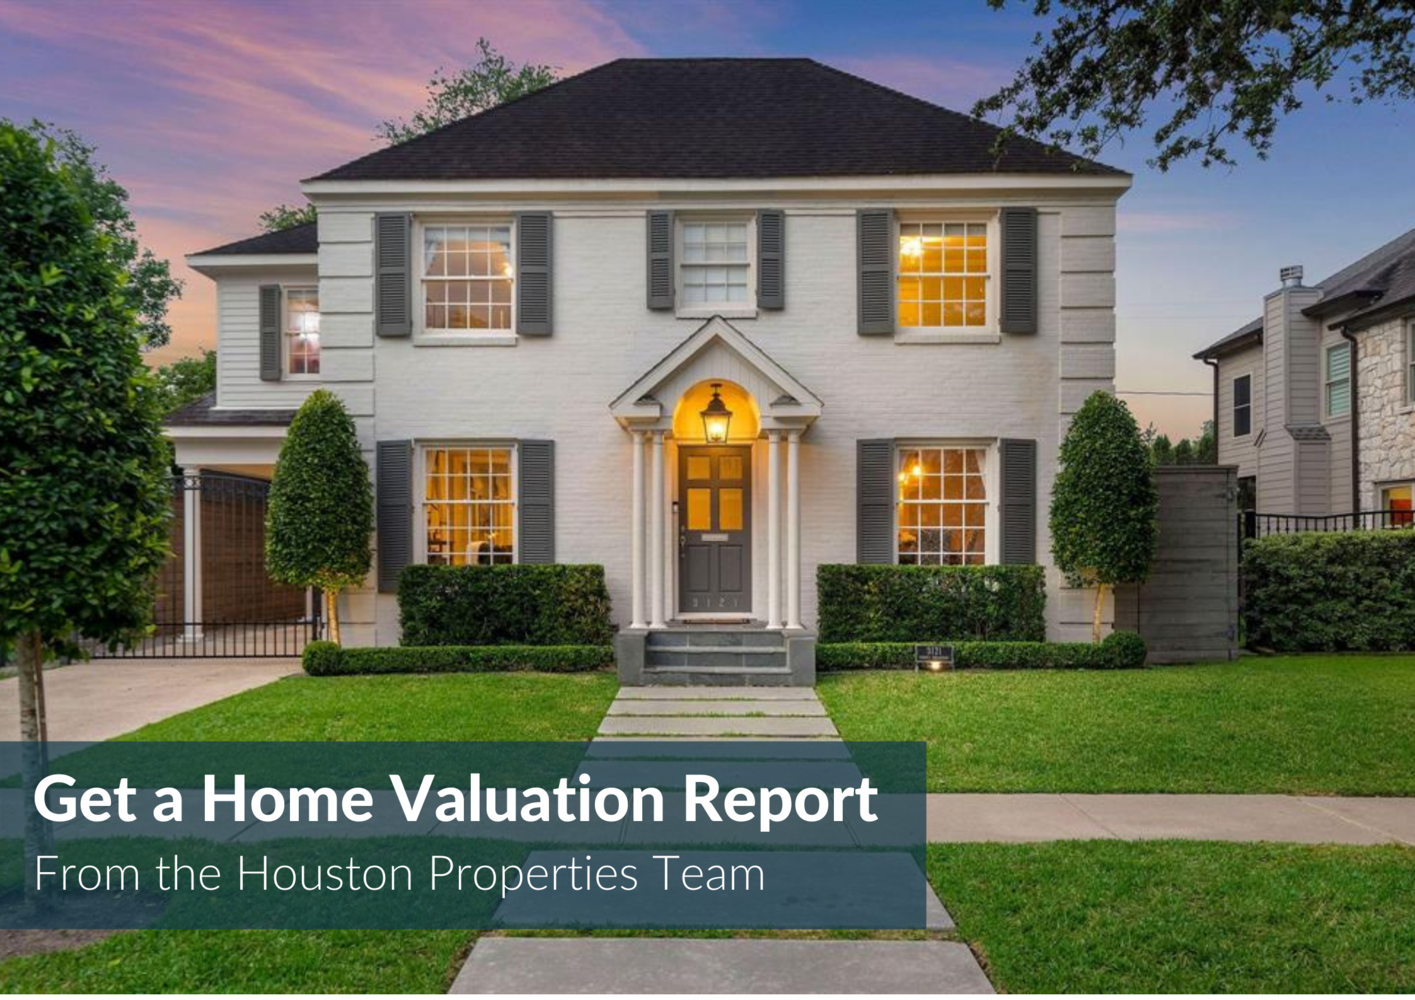 Get A Free Valuation On Your West U Home Now!